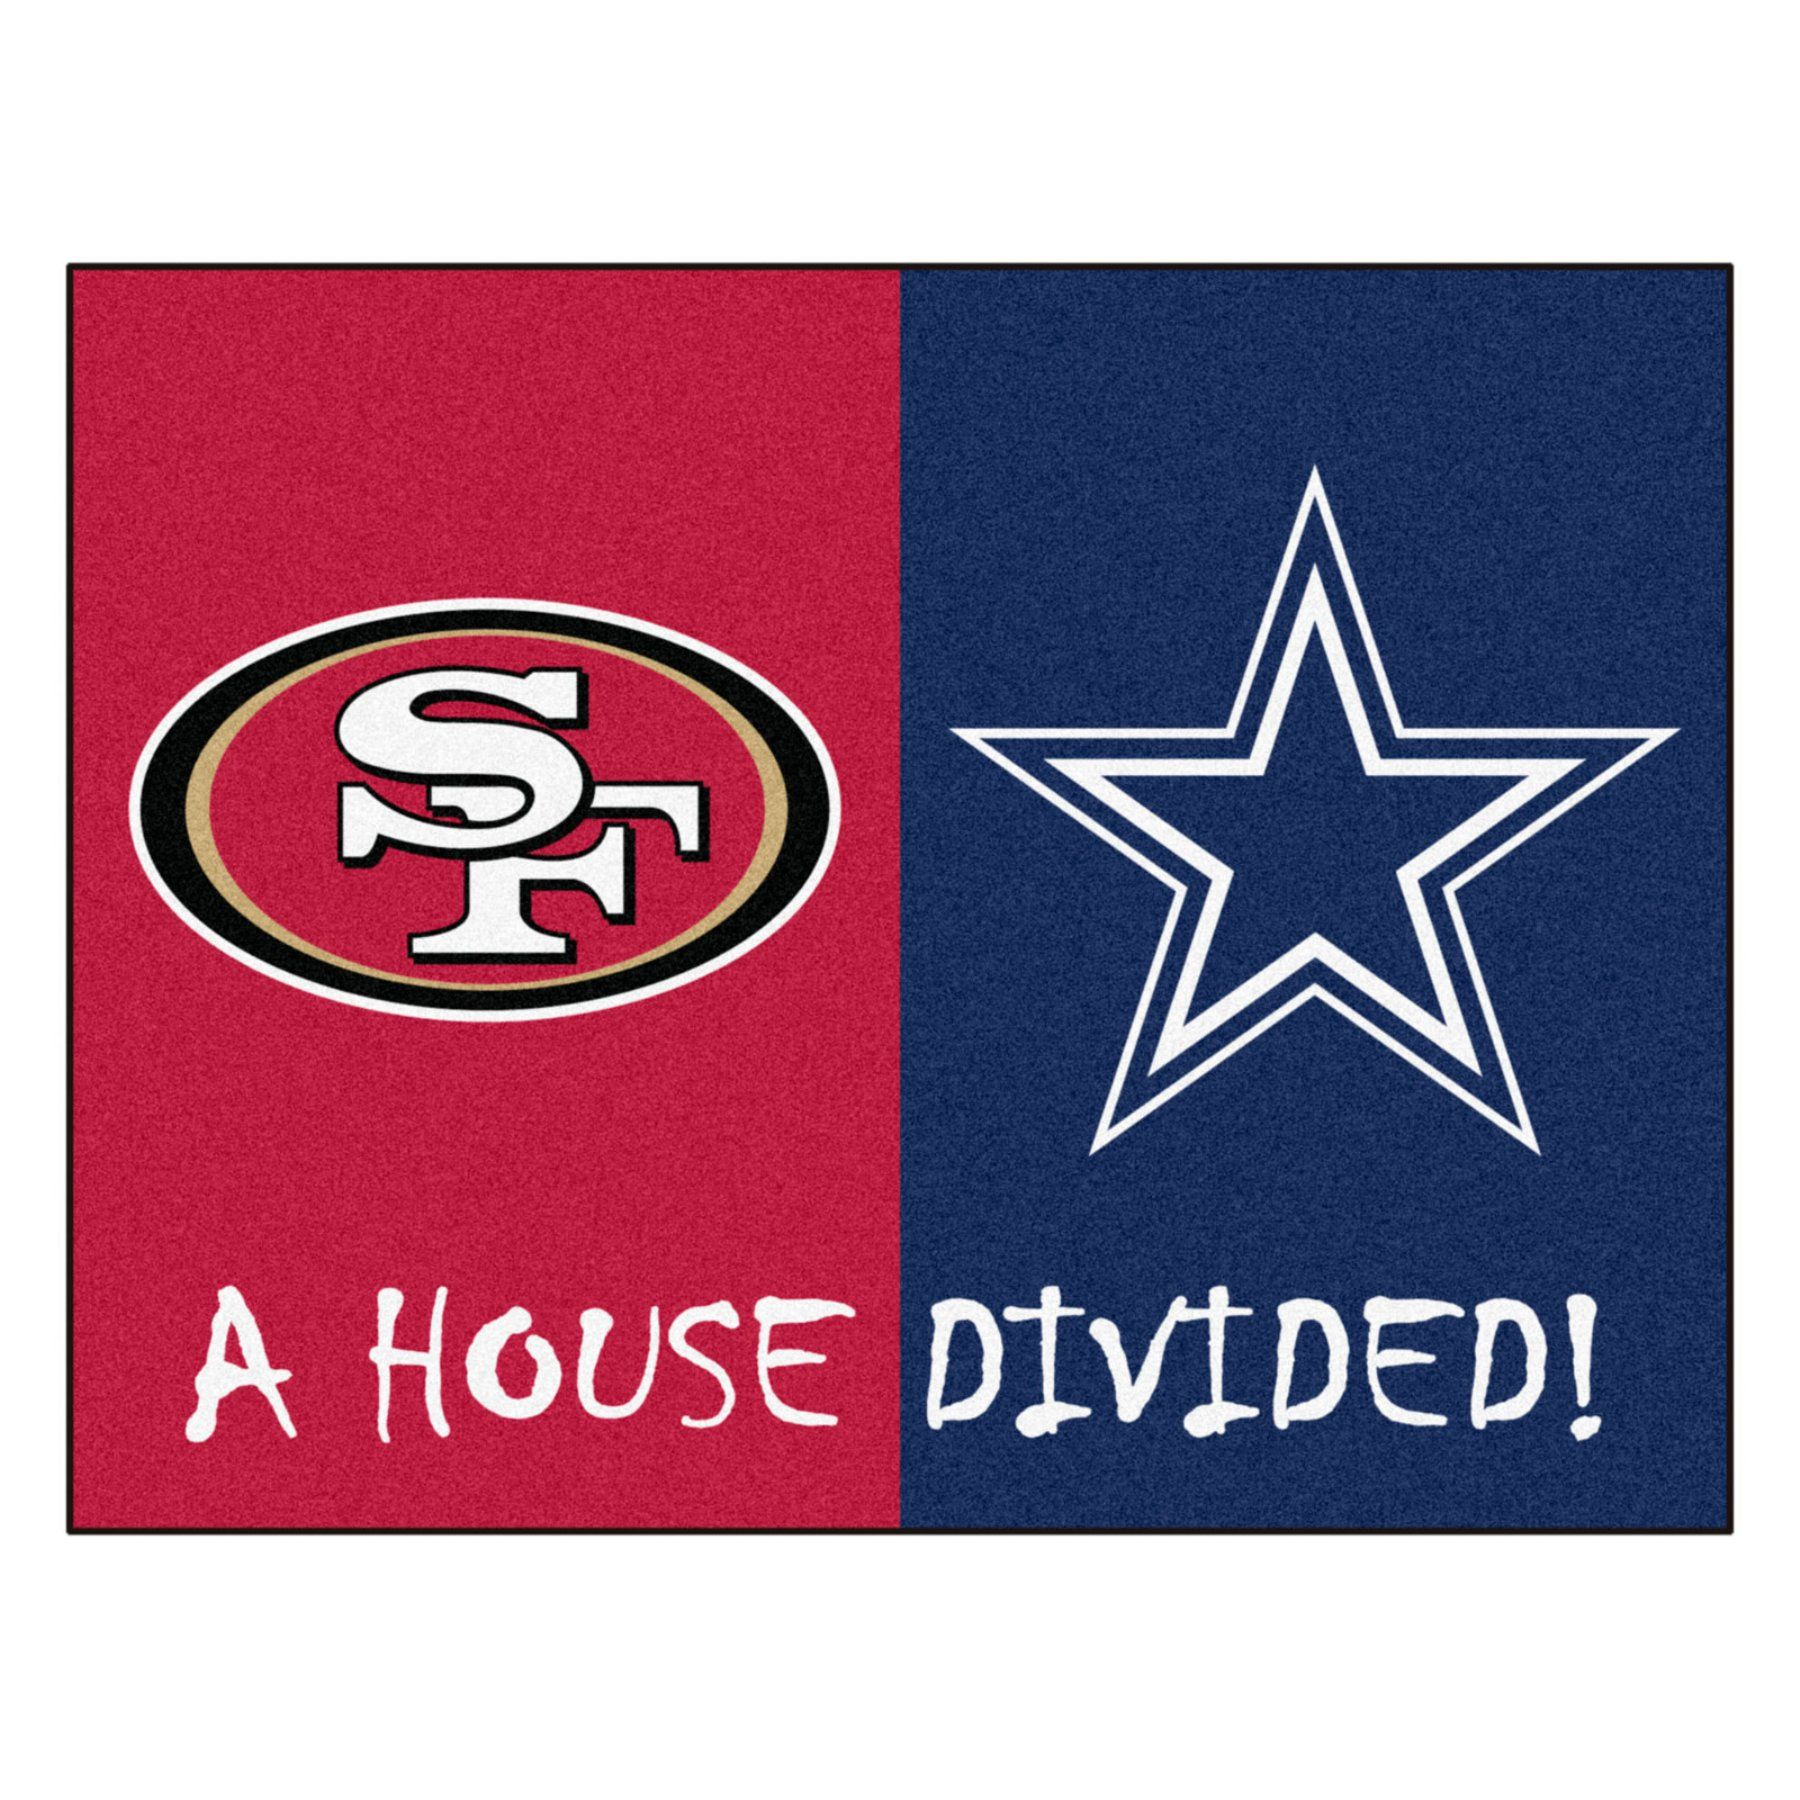 Fan Mats NFL Football House Divided Indoor Rug - 21677